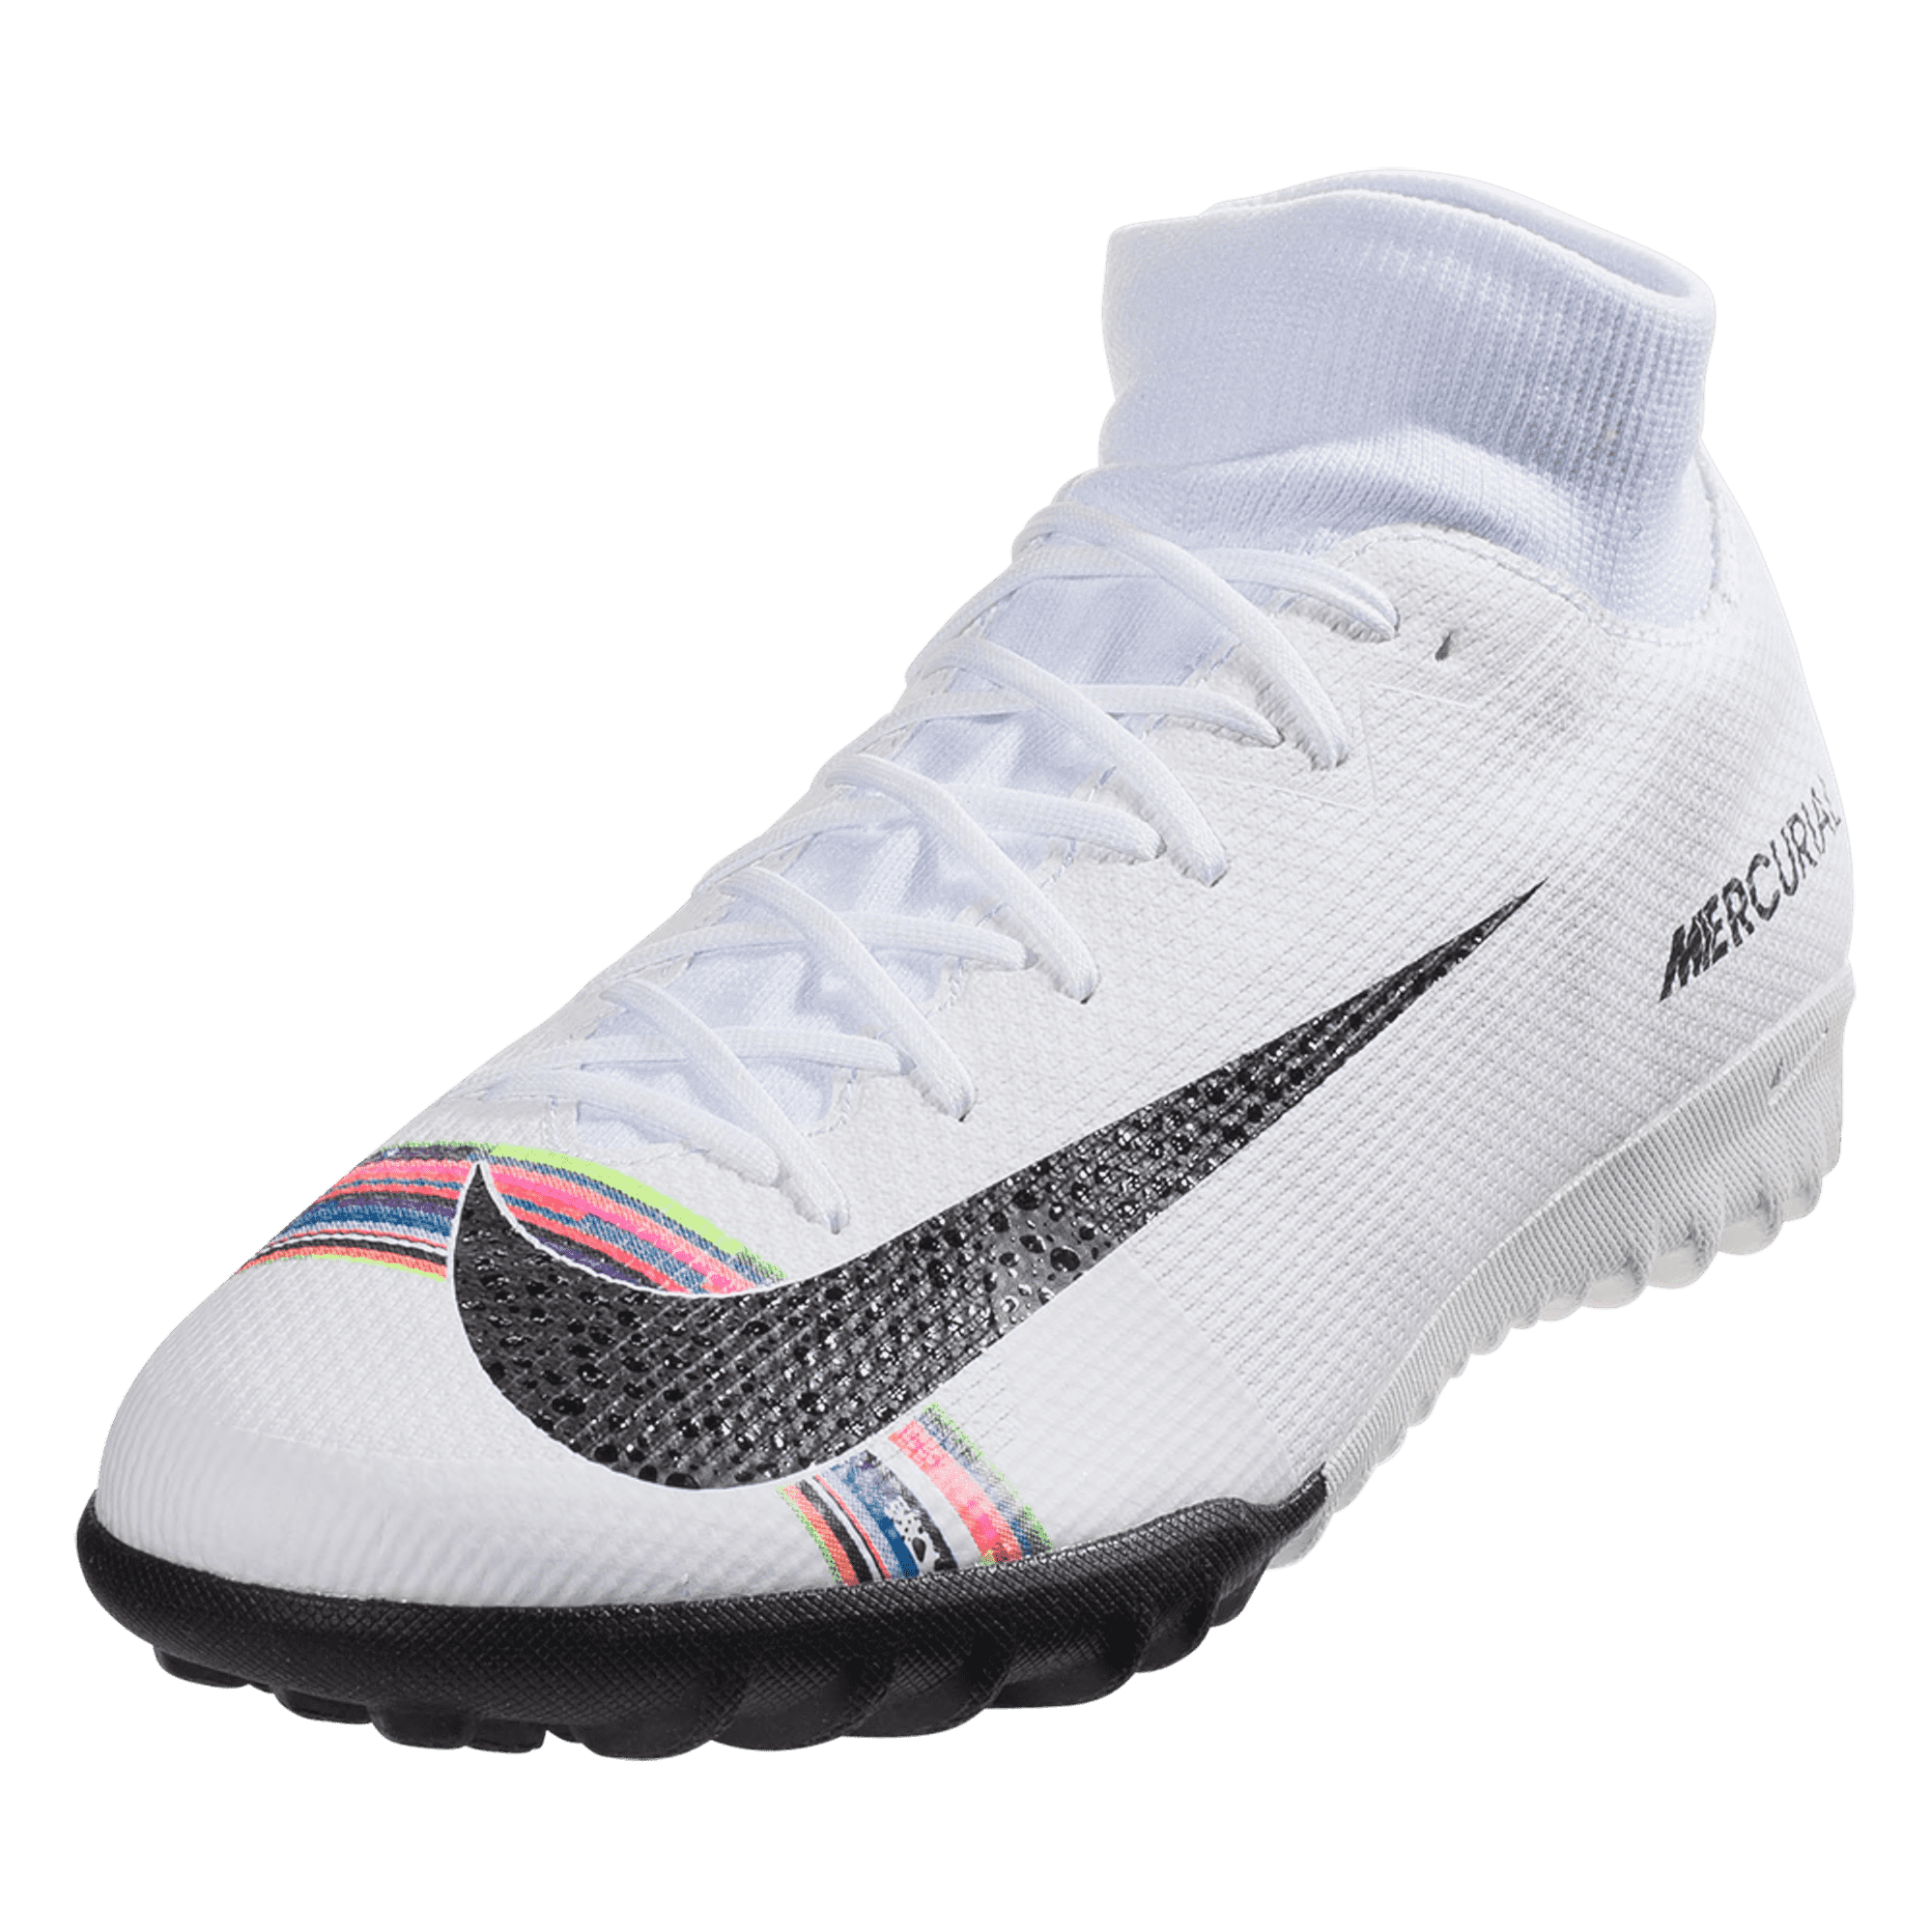 best service aa5ce 3dd54 Nike Mercurial Superfly X VI Academy SE TF Artificial Turf Soccer Shoe -  Platinum / Black / White